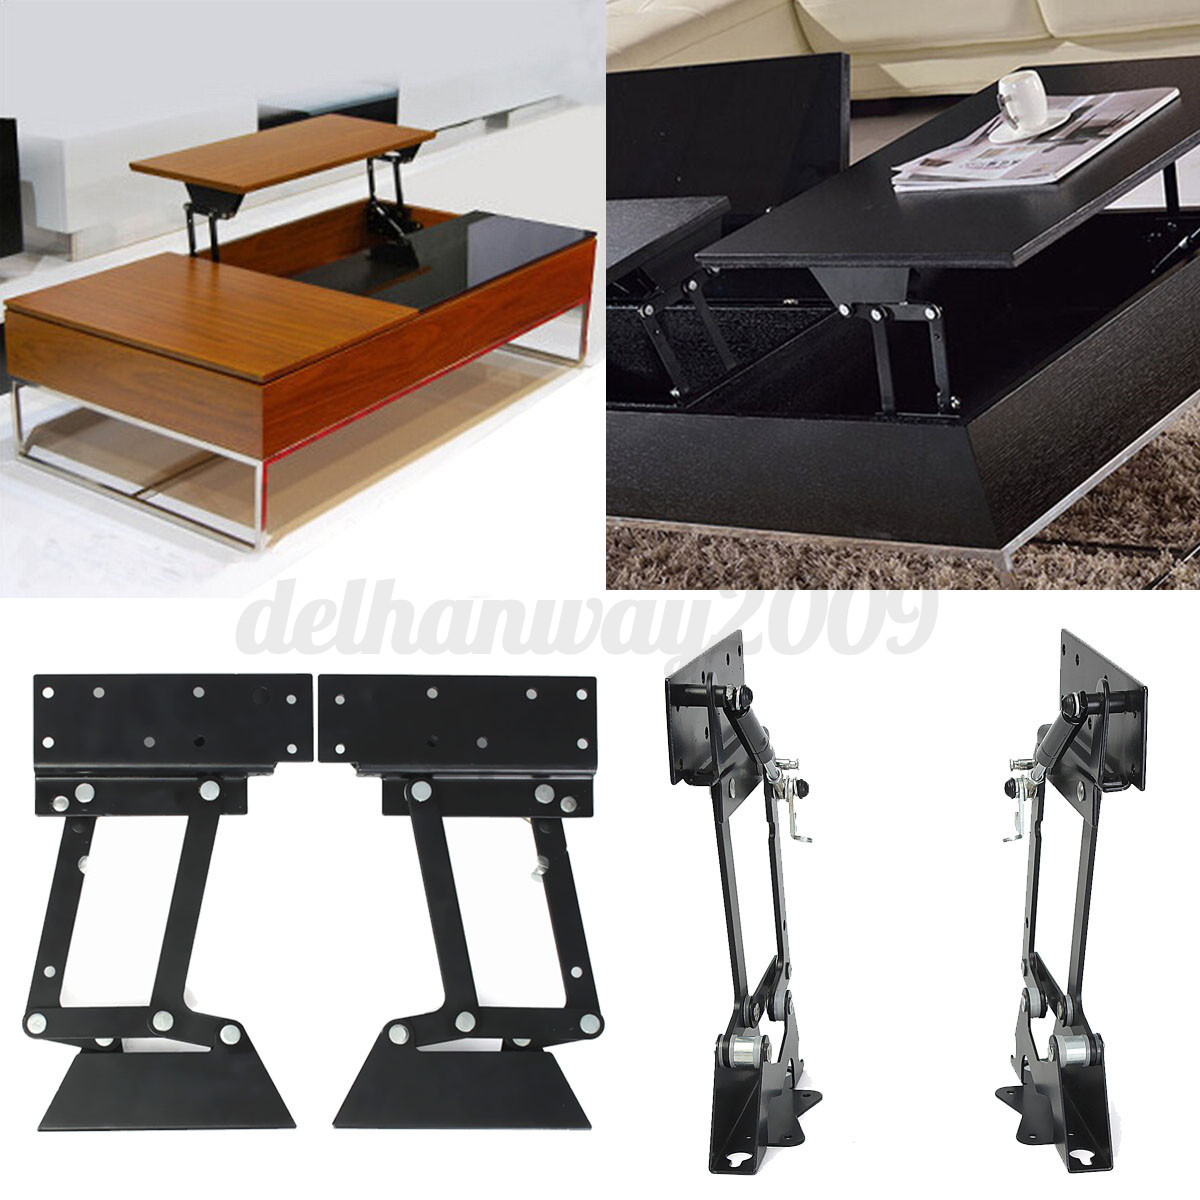 folding lift up table hinge for coffee desk mechanism. Black Bedroom Furniture Sets. Home Design Ideas